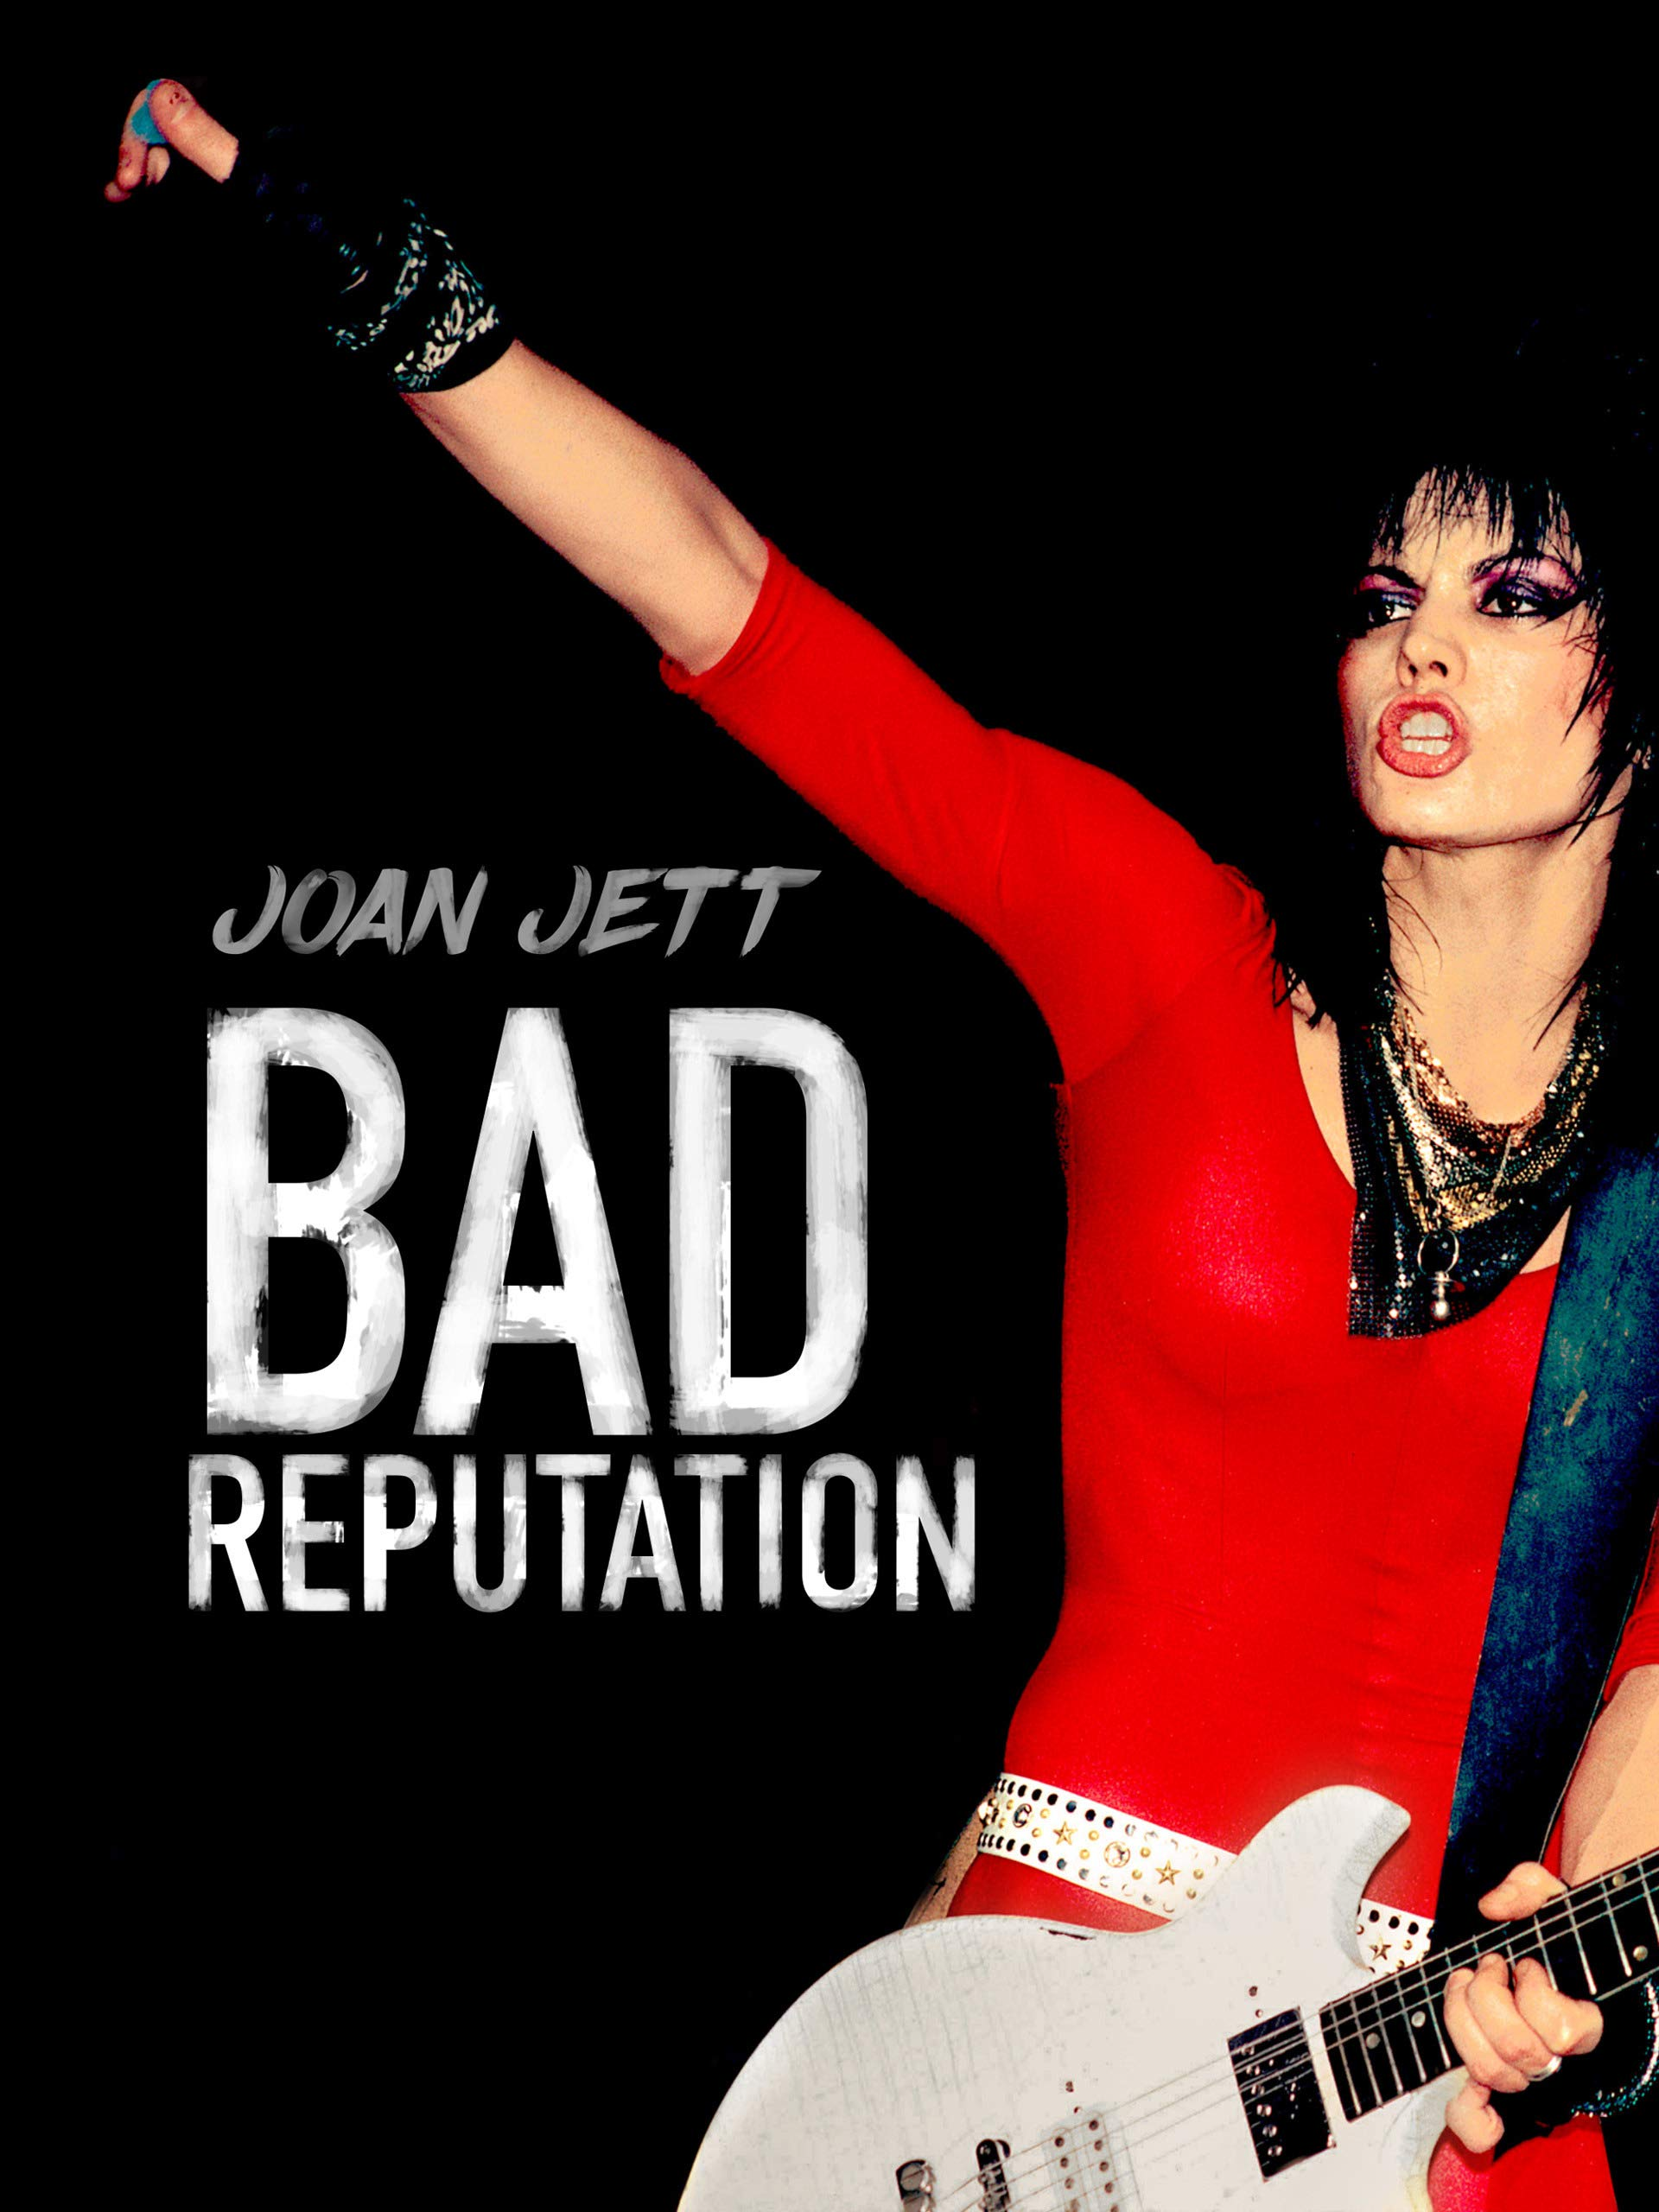 The life and career of Joan Jett from her early years ripping it up onstage as the founder and backbone of hard-rock legends The Runaways, to her solo career and the enduring presence as a rock 'n' roll pioneer and mentor.  WATCH NOW!